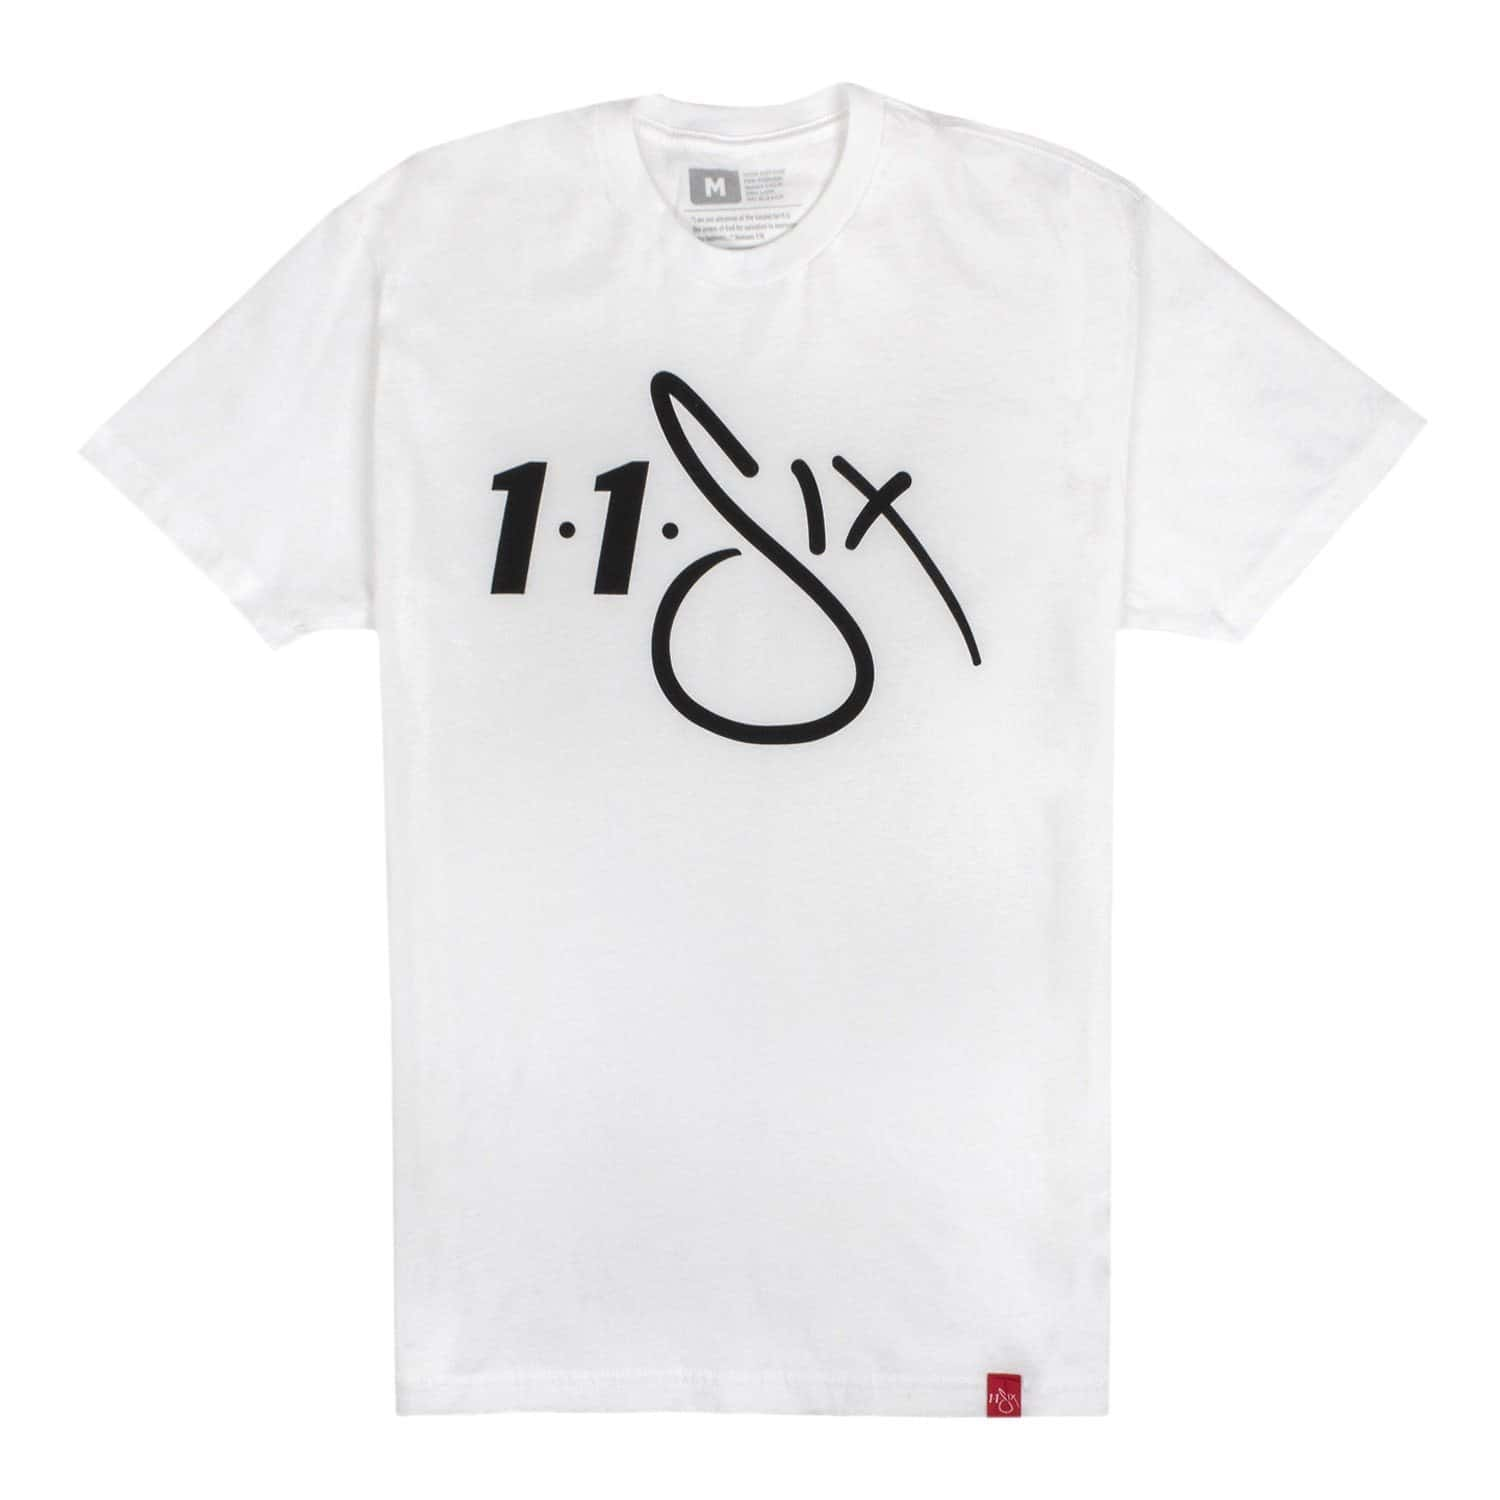 116 'Red Label' T-Shirt - White